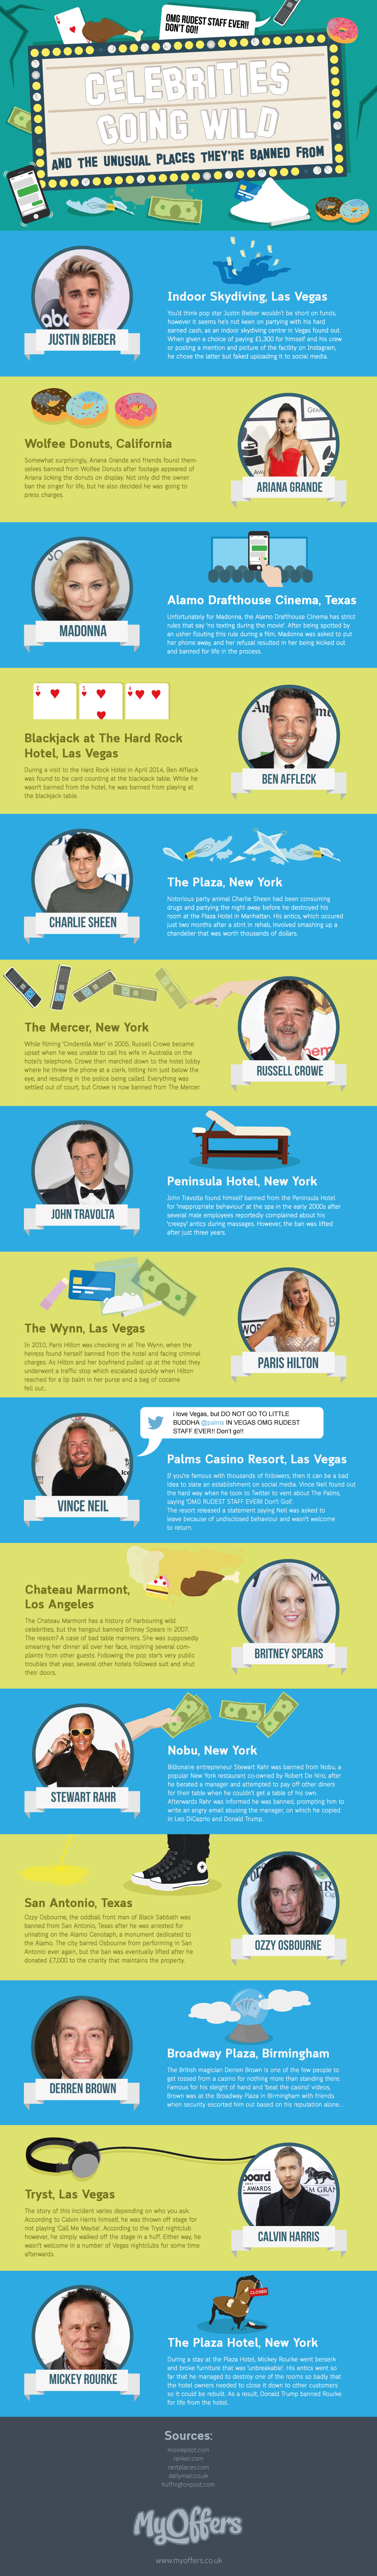 Tales of Wild Behavior by Celebrities and Places They Got Banned From - Infographic